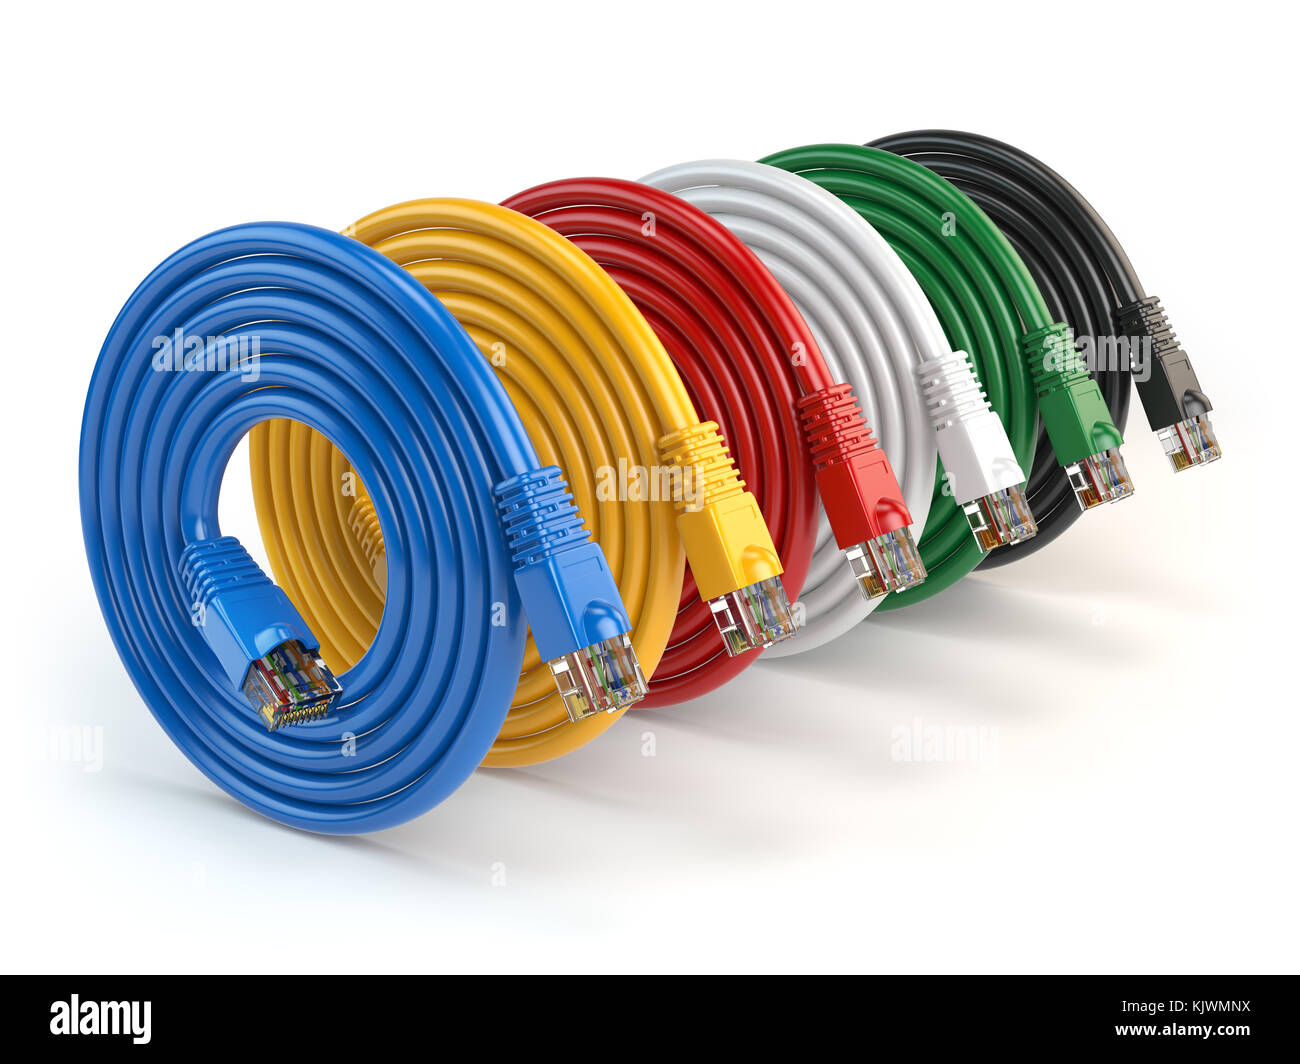 hight resolution of set of colorful of lan network connection ethernet cables internet cords rj45 isolated on white background 3d illustration